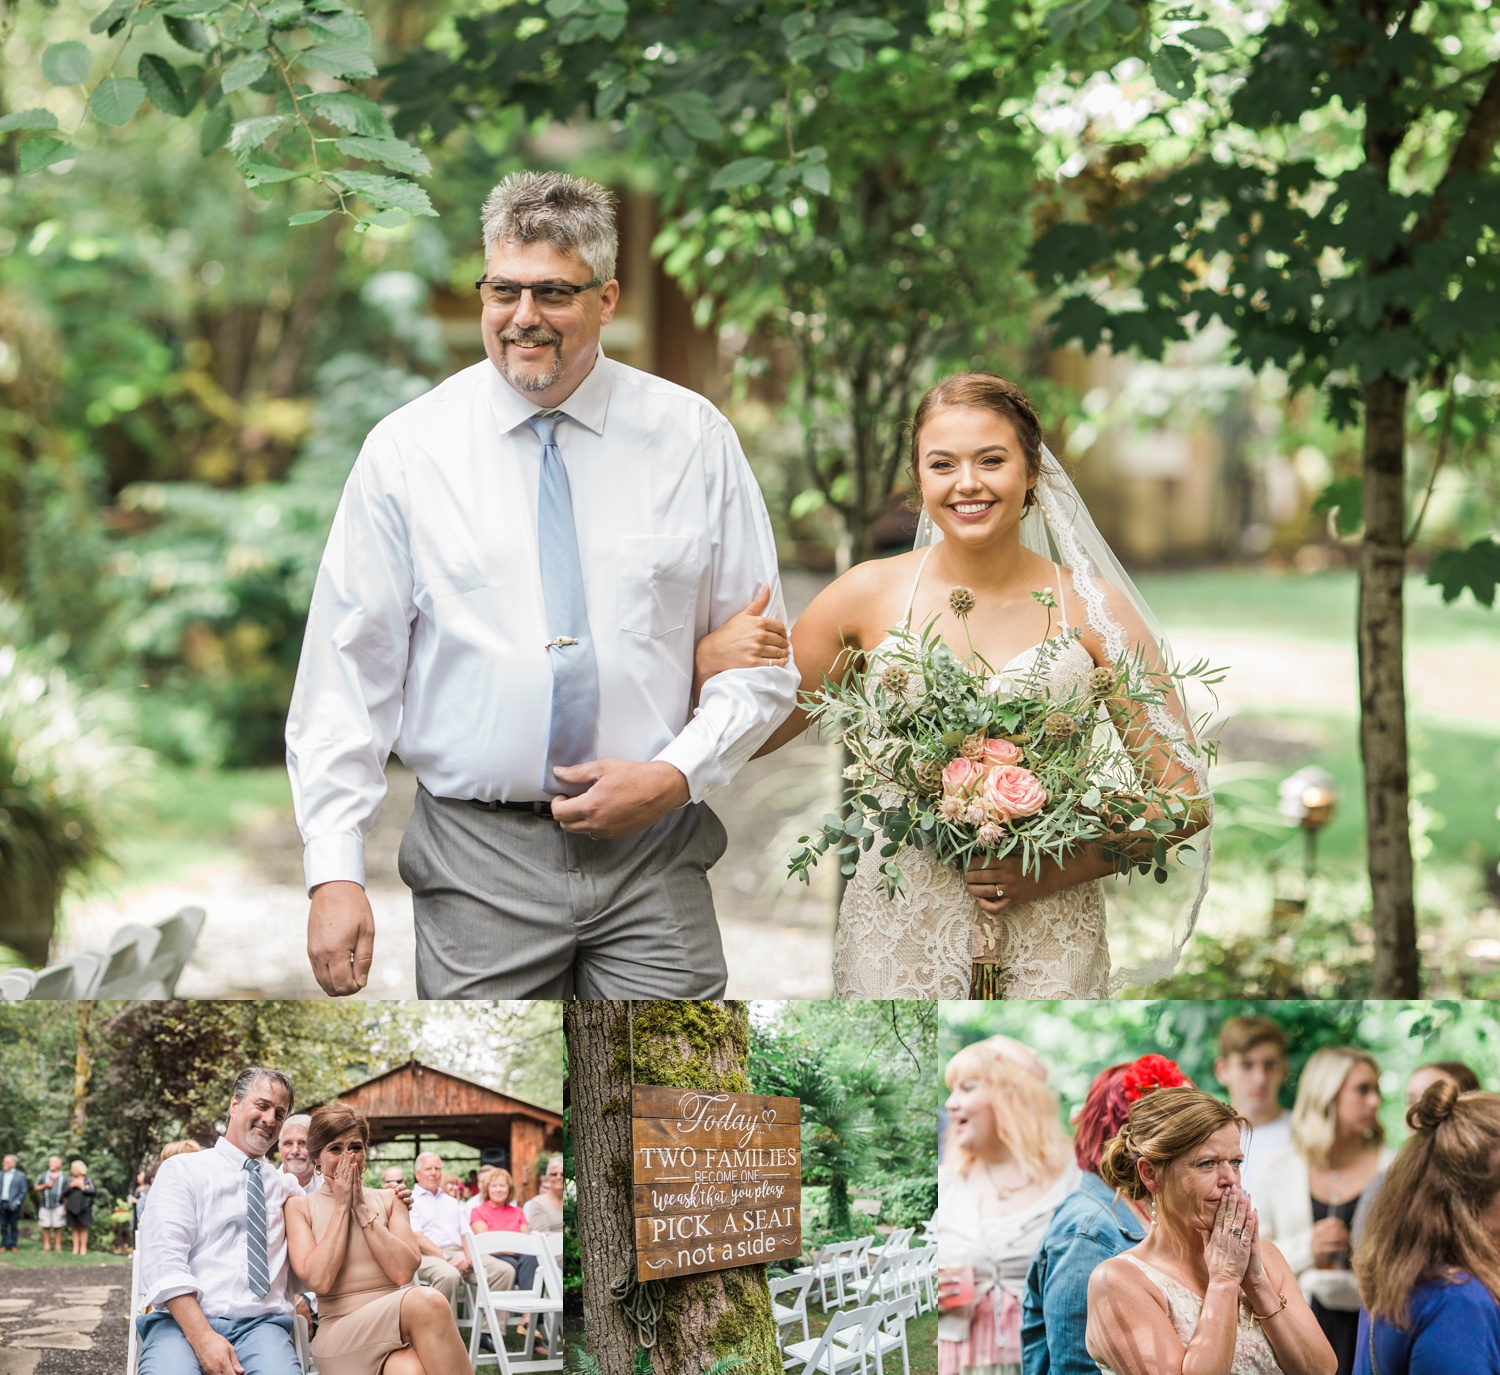 A bride is escorted down the aisle during her wedding ceremony at a summer wedding at Maroni Meadows in Snohomish, a wedding venue near Seattle, WA.   Joanna Monger Photography   Seattle & Snohomish Photographer